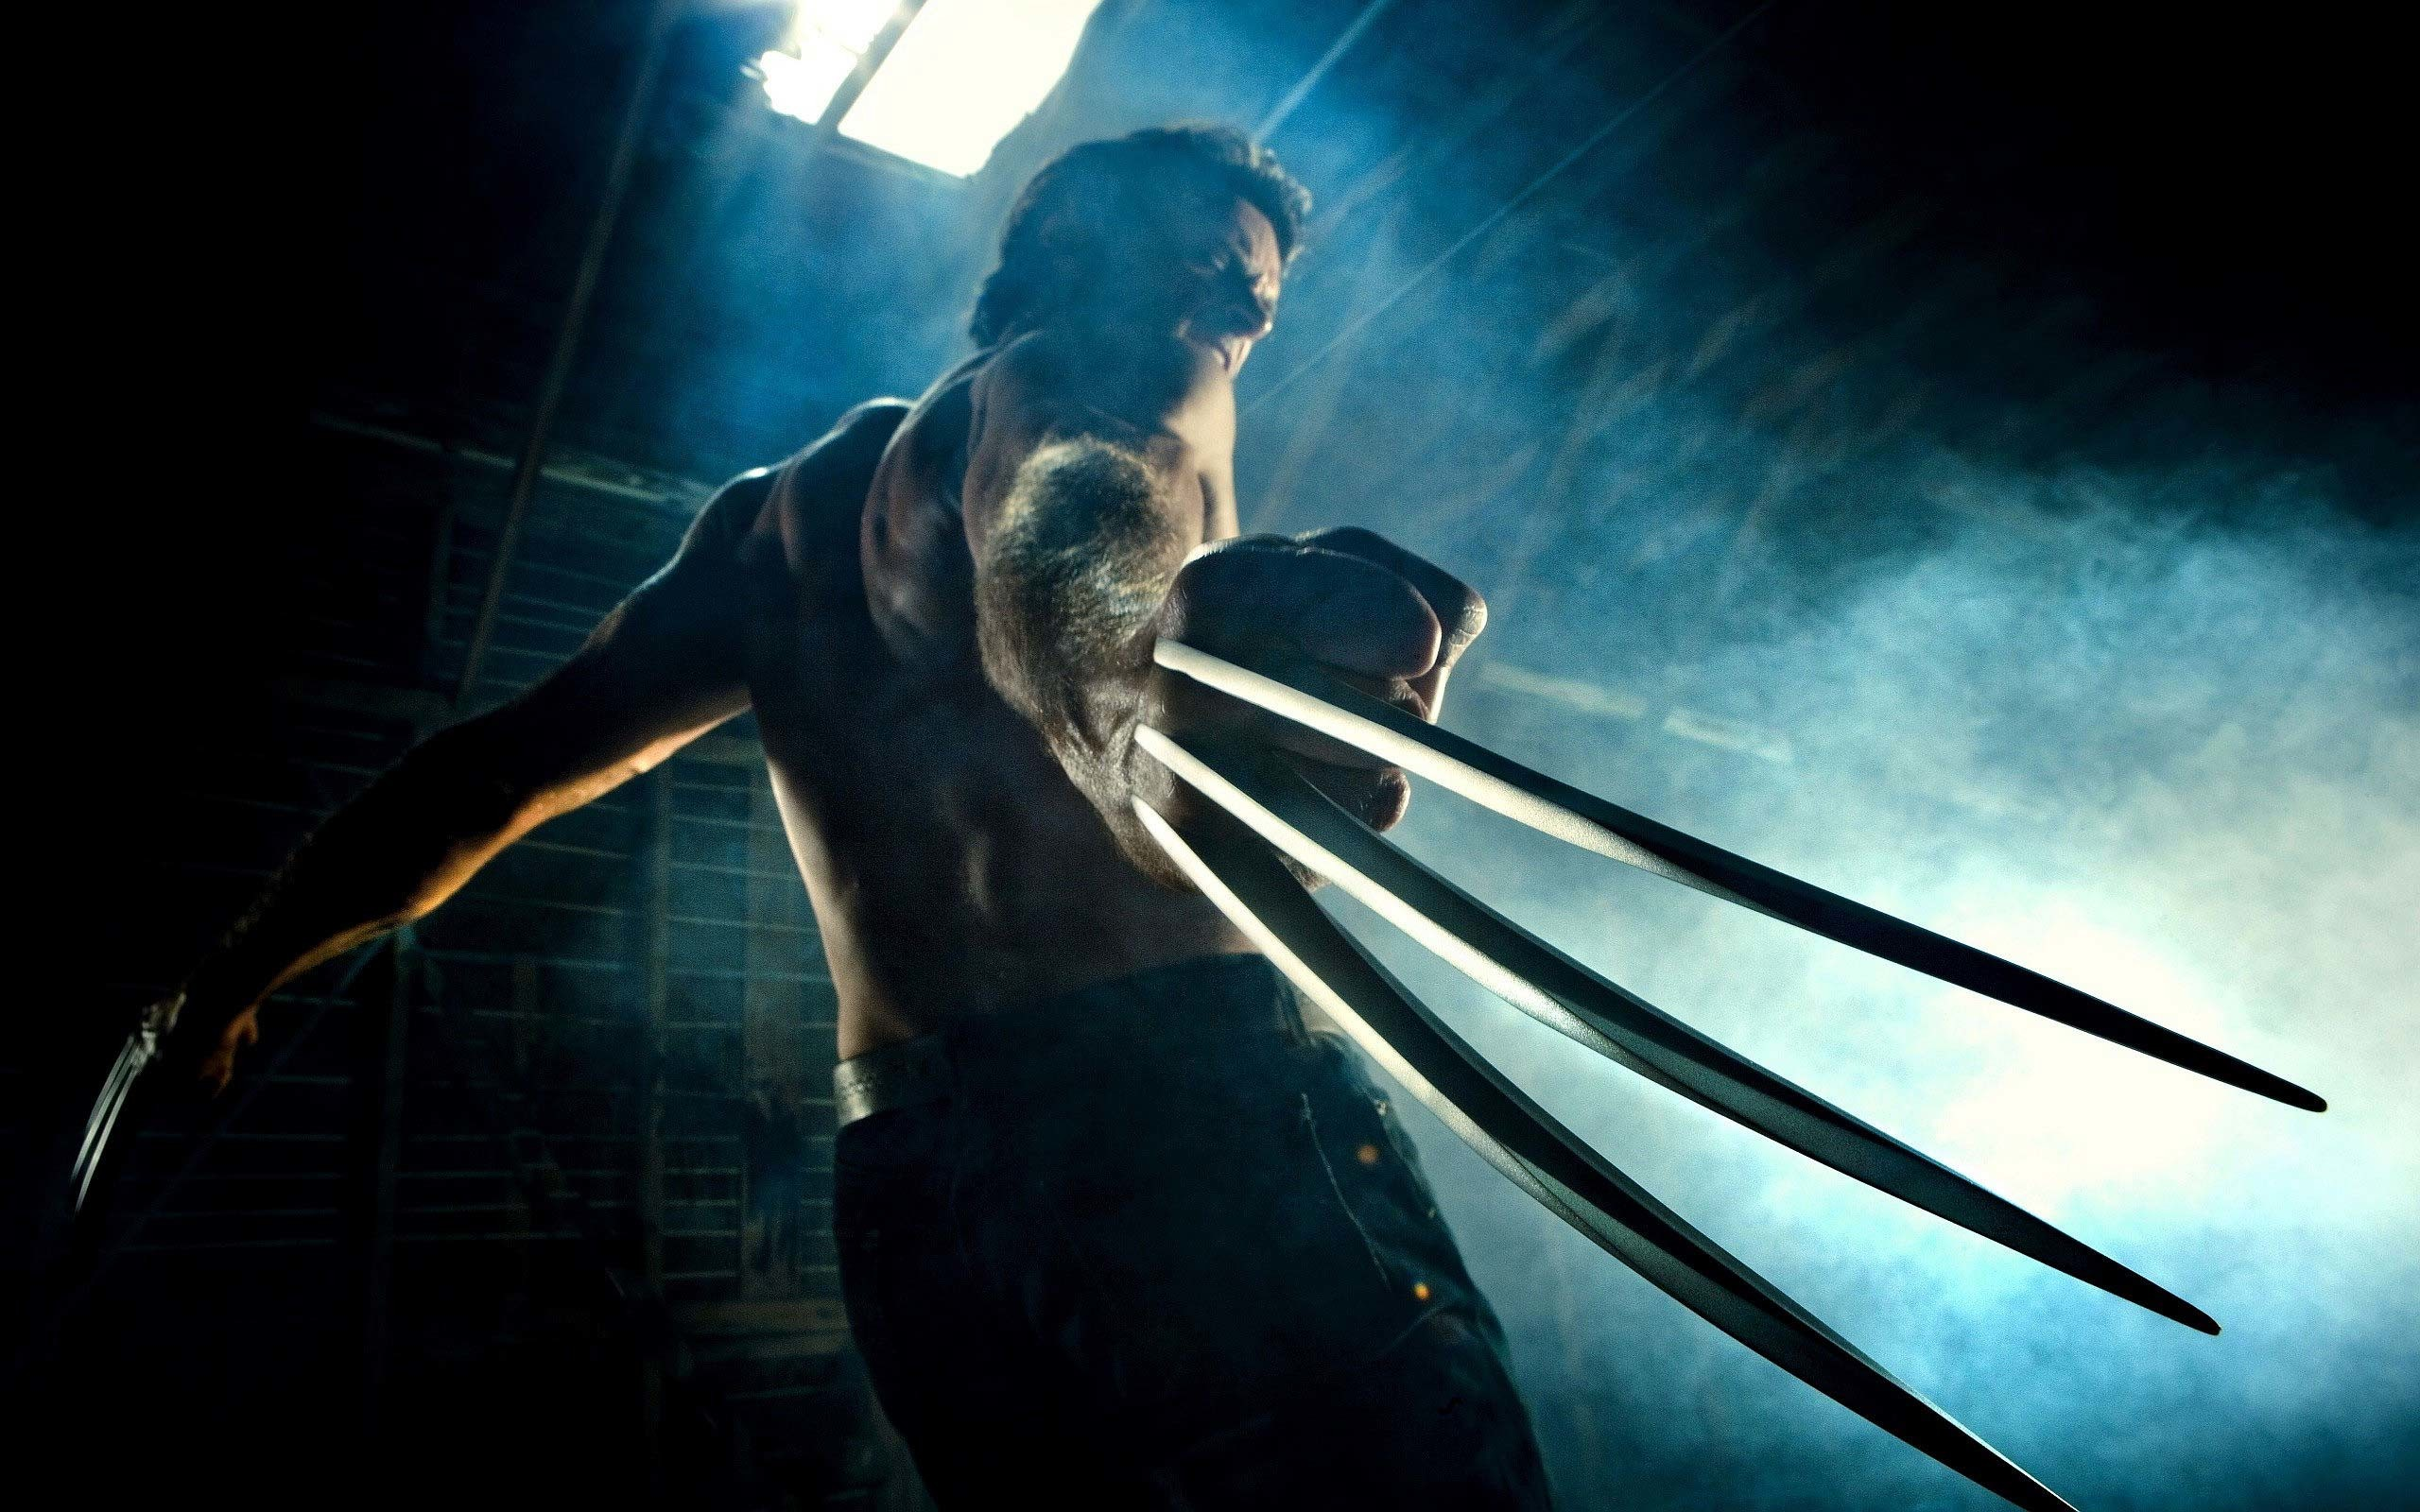 2560x1600 wolverine-hugh-jackman-x-men-hd-wallpapers-collection-